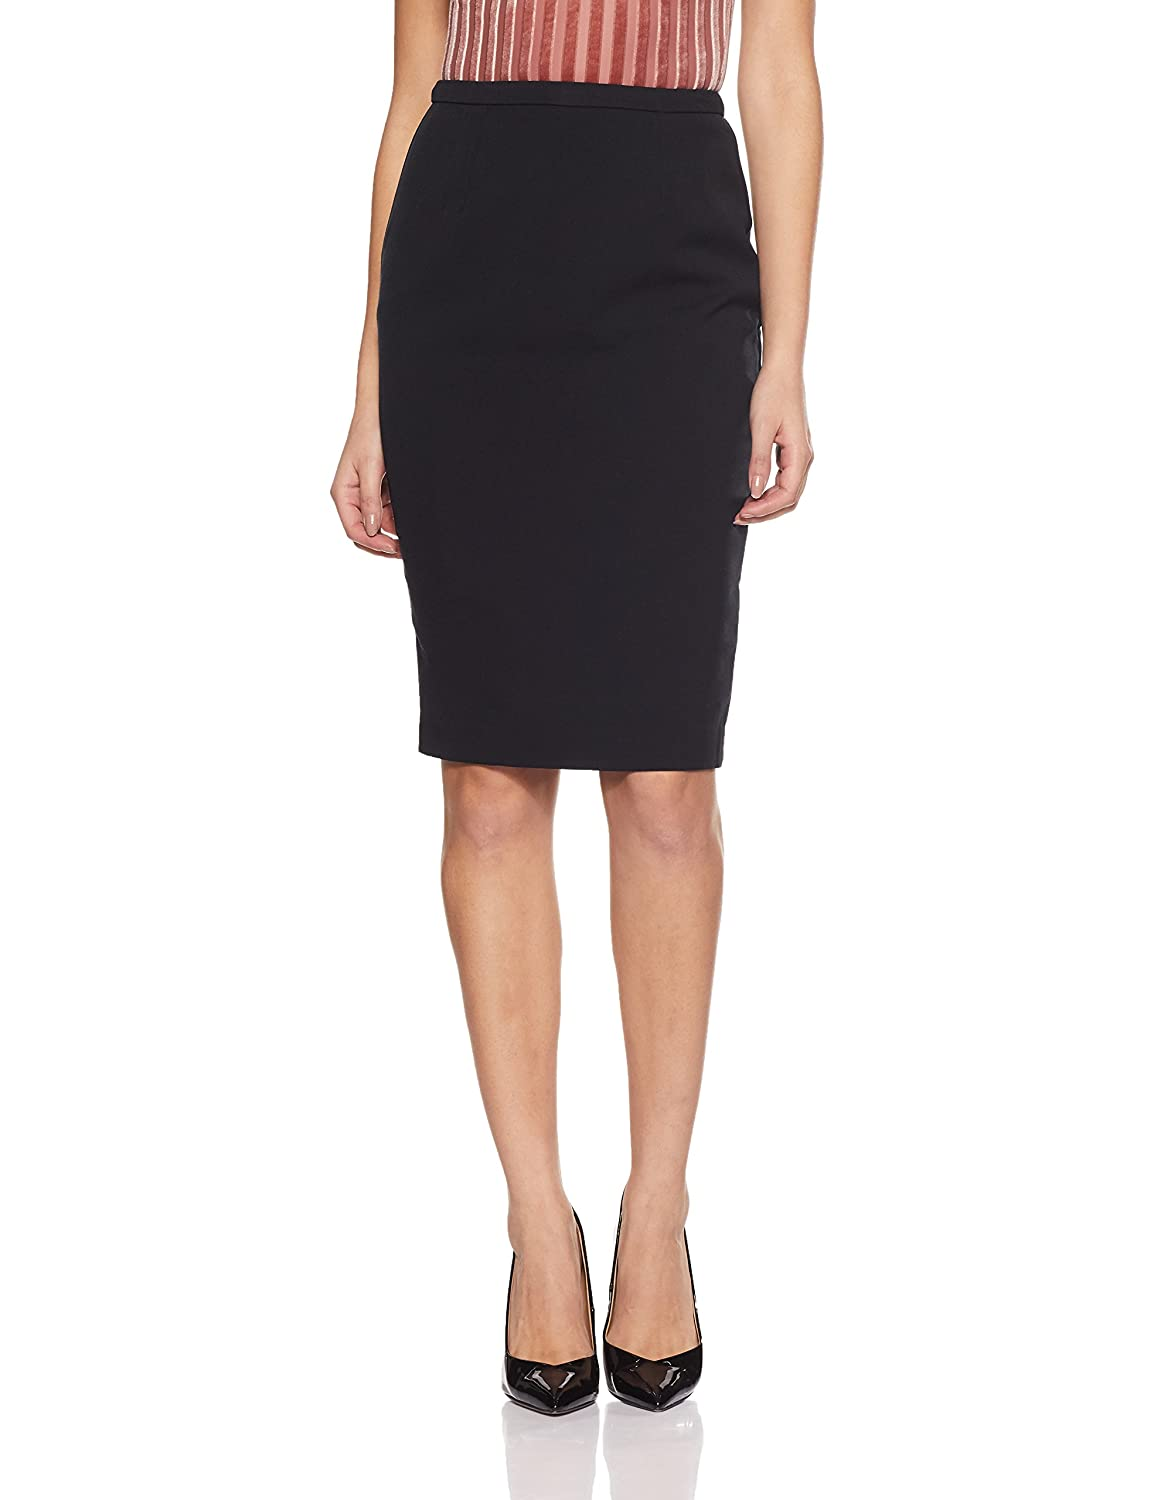 Marks & Spencer Women's Pencil Midi Skirt